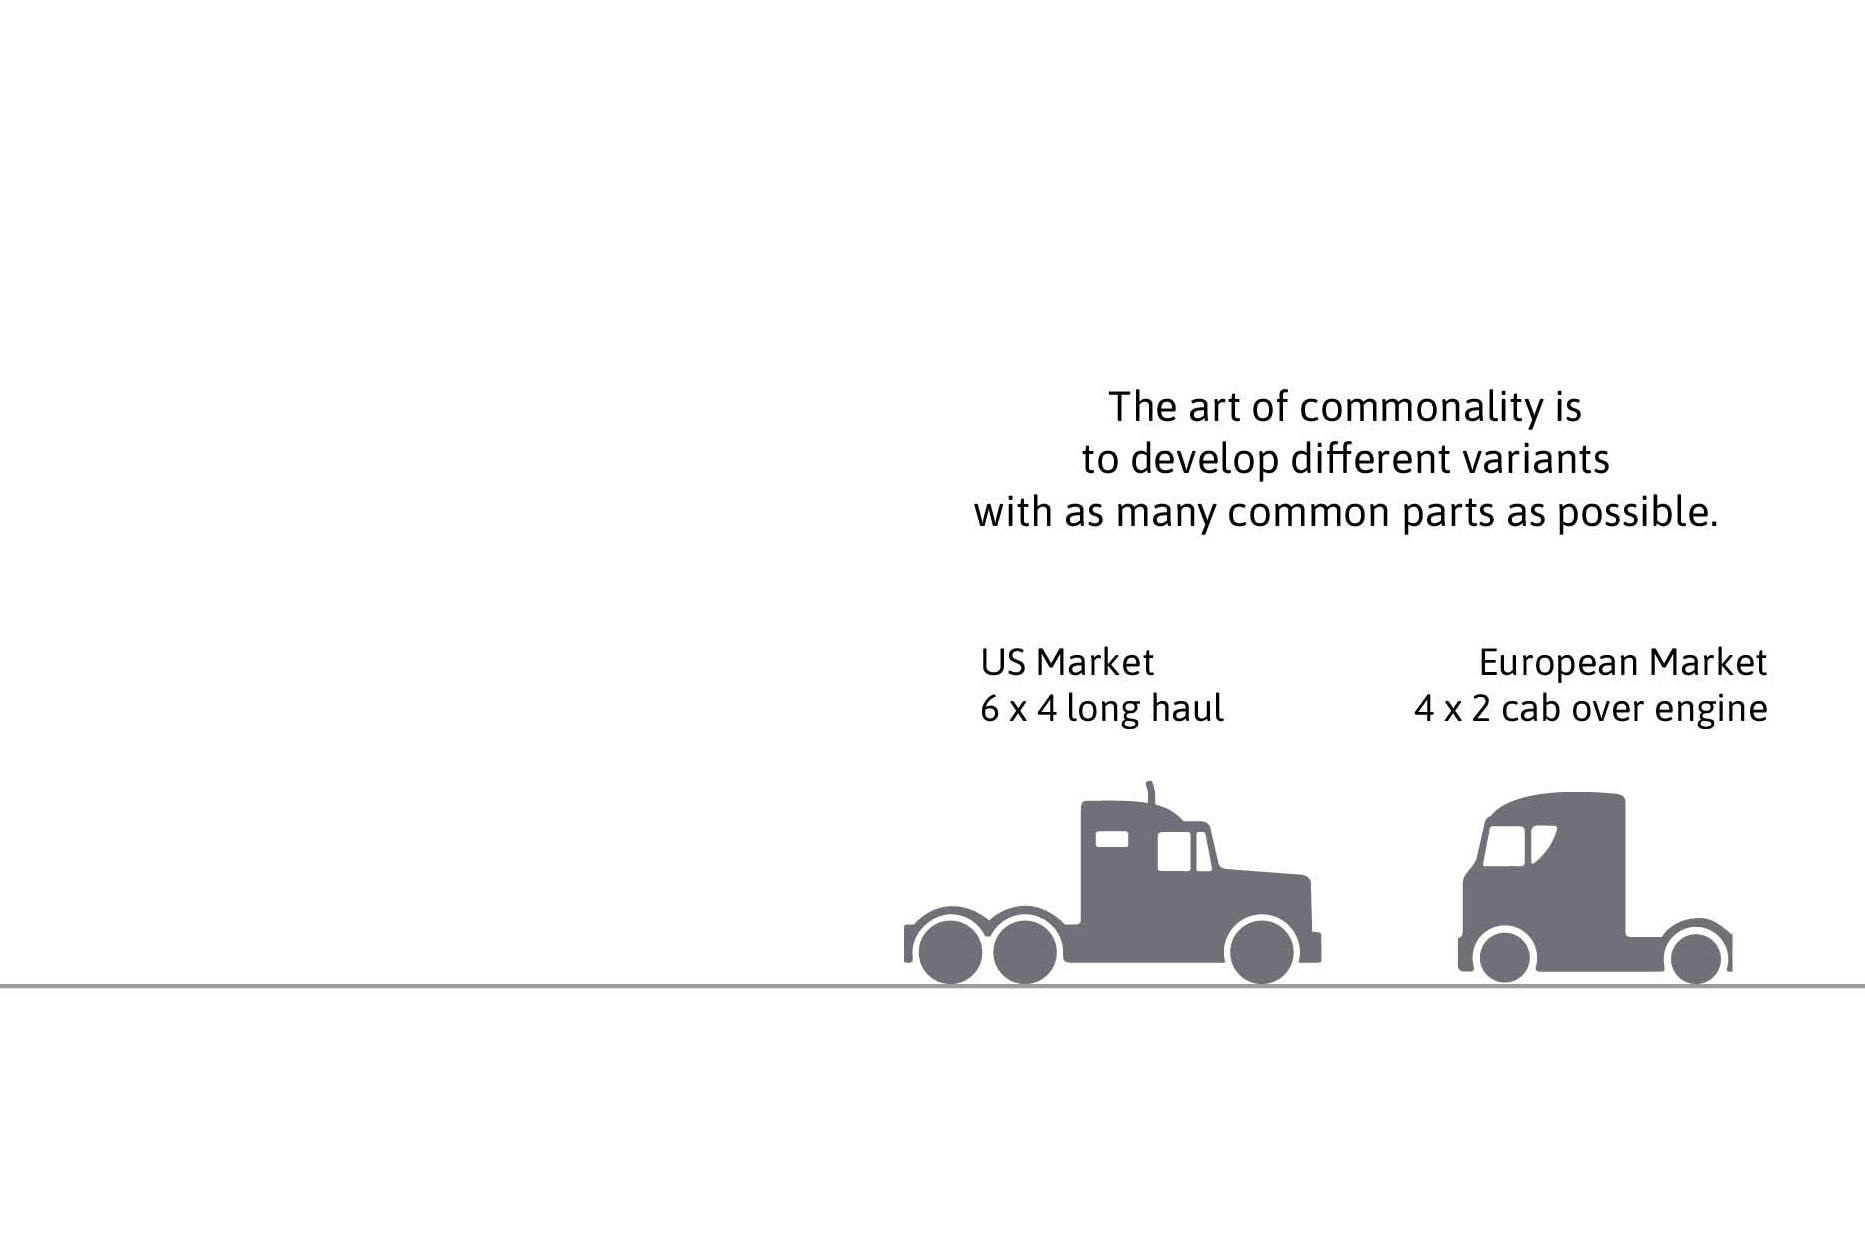 Commonality means, for example, that trucks in the US and Europe consist of many common part.